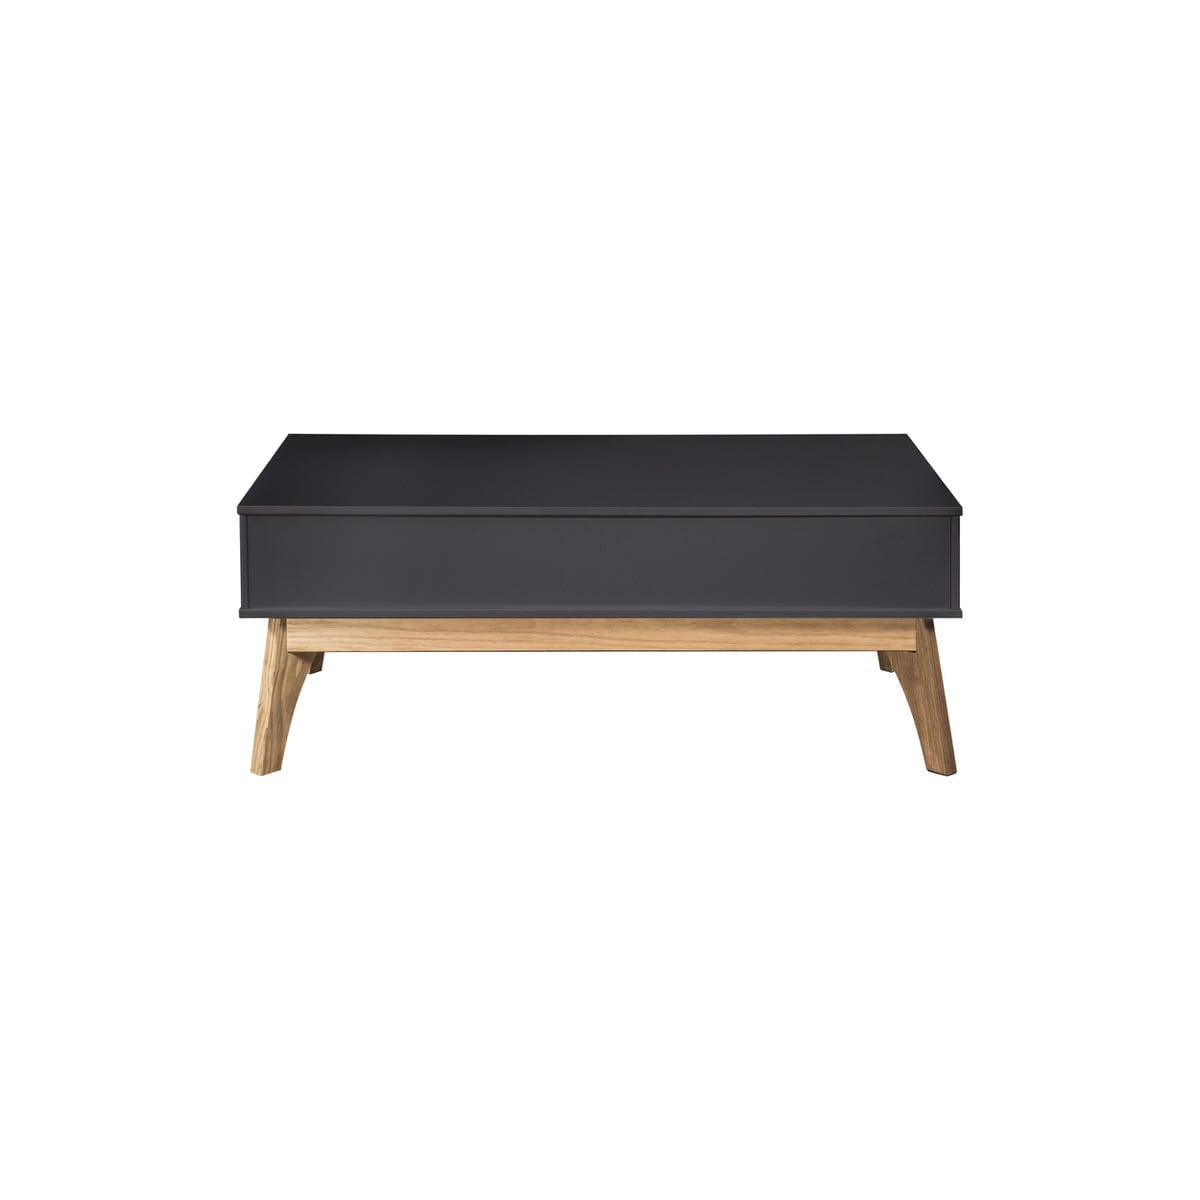 Picture of: Rustic Mid Century Modern 2 Drawer Jackie 1 0 Dark Grey Natural Wood Coffee Table By Manhattan Comfort